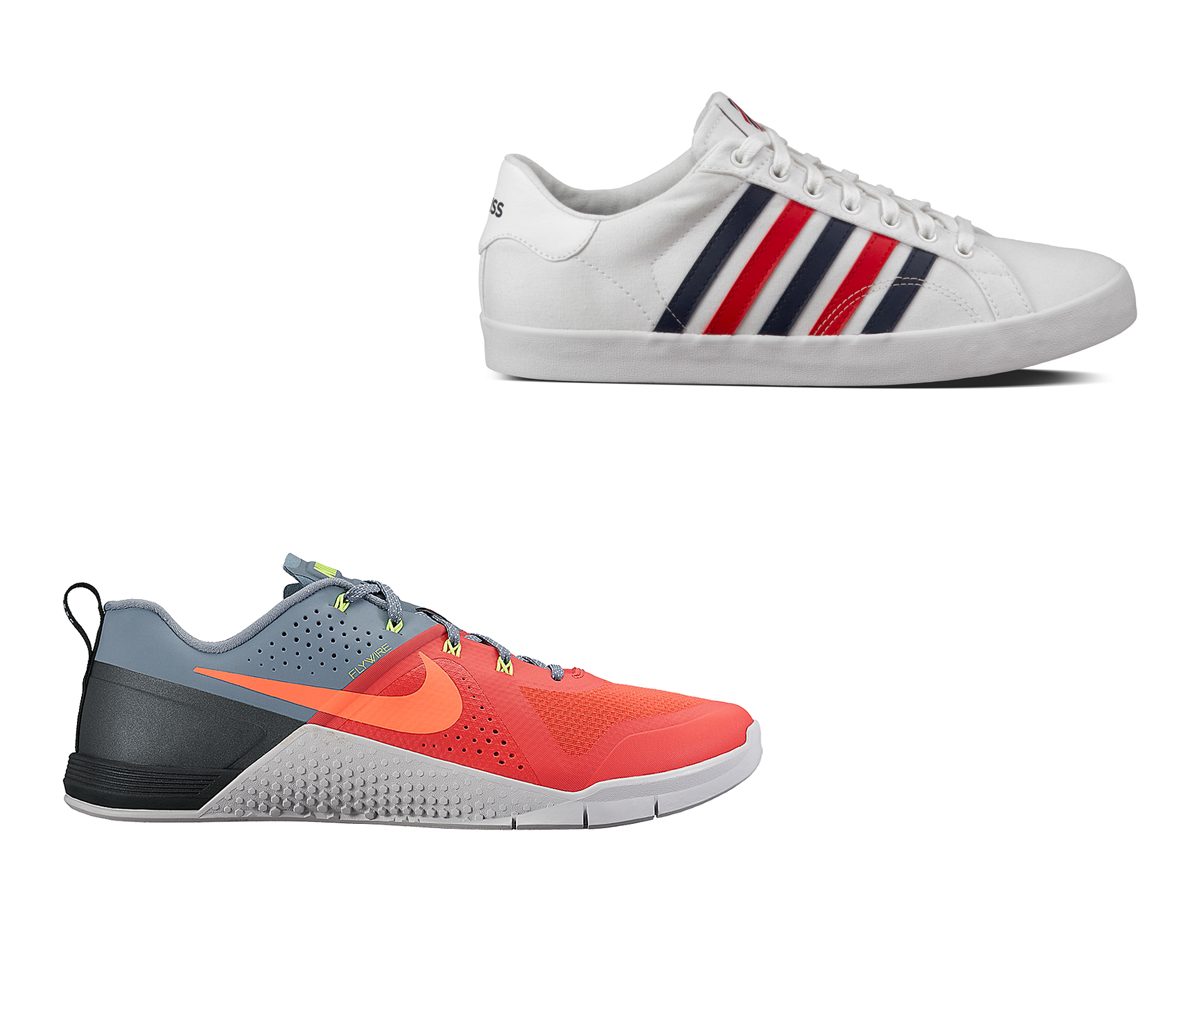 9 New Stylish Sneakers You Need Now